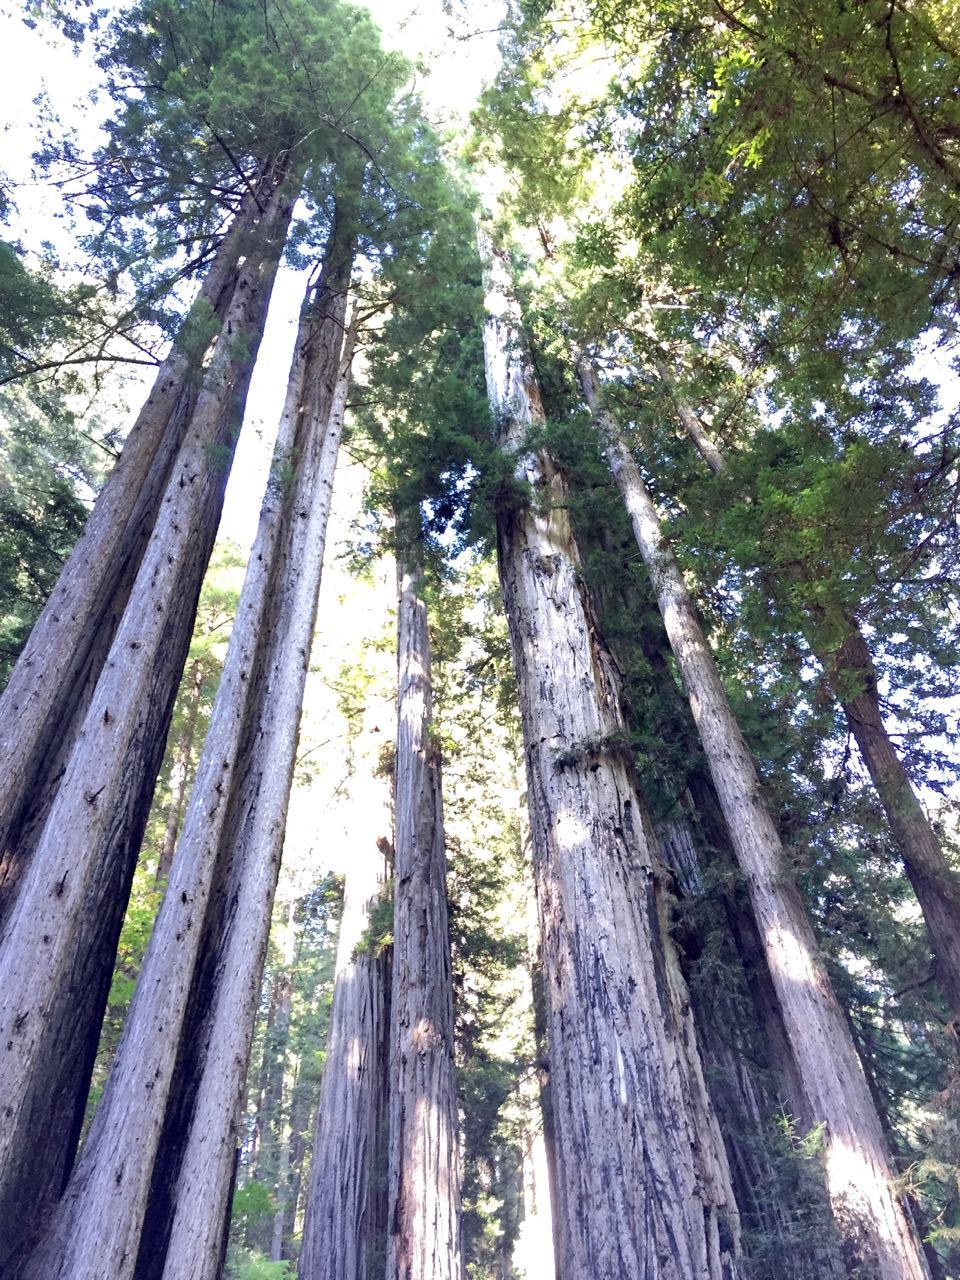 Redwoods 2017 10 01 237 Of 244